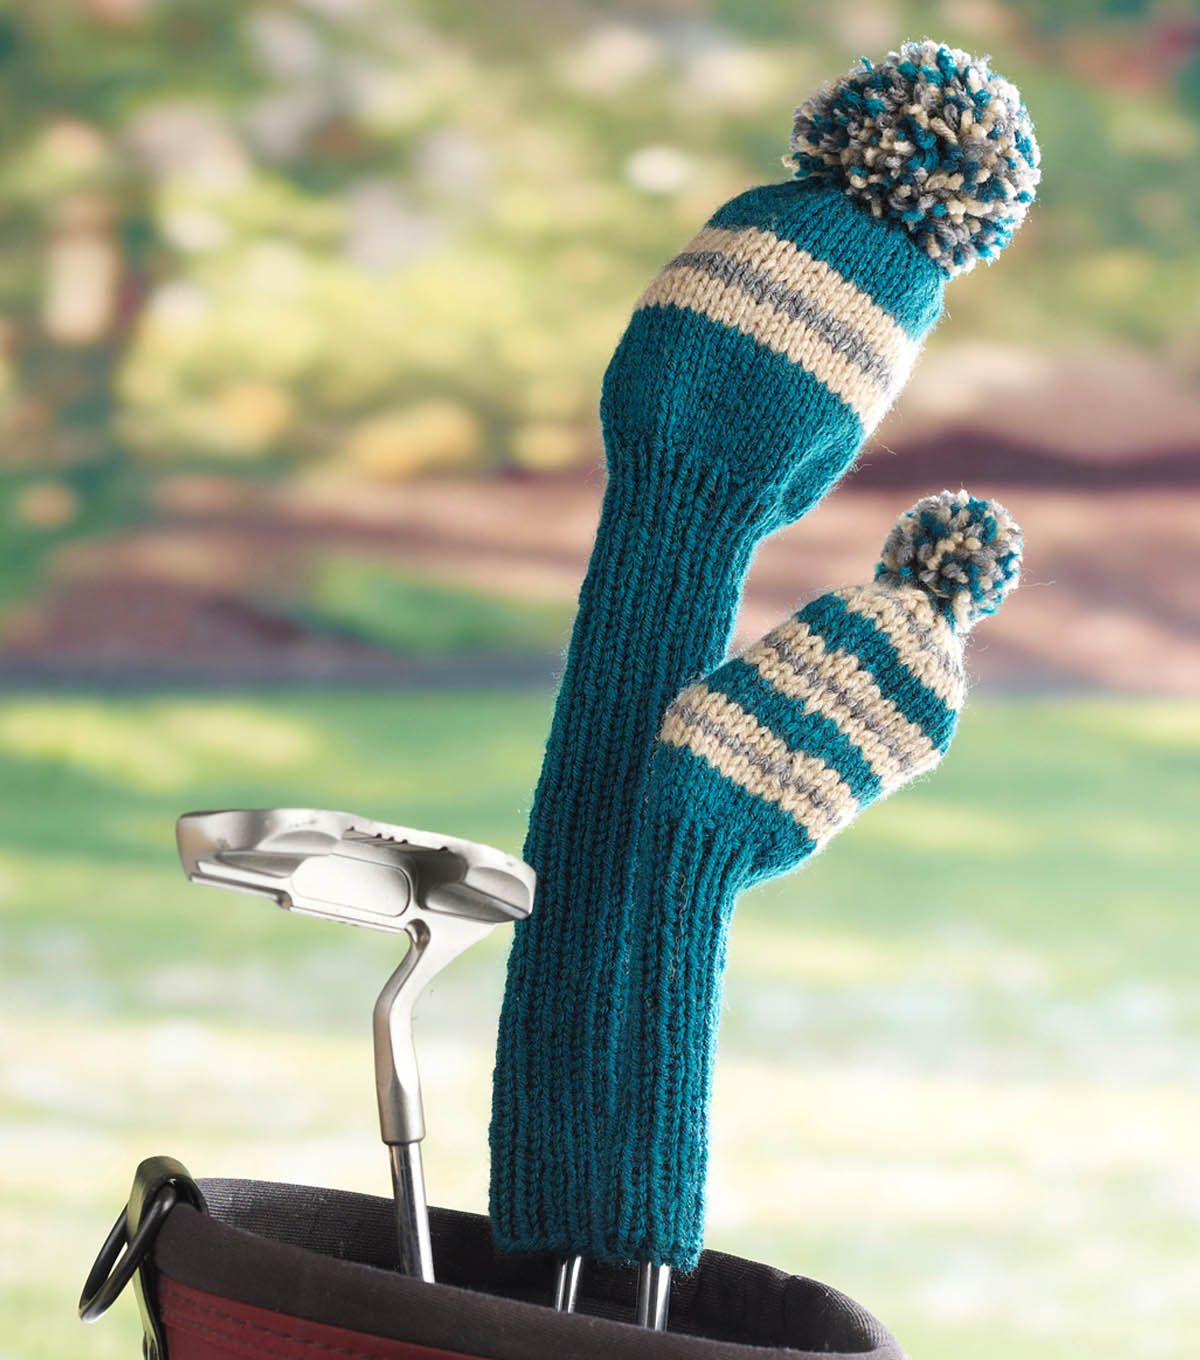 How To Knit Golf Club Covers | Knitting Patterns | Pinterest | Golf ...